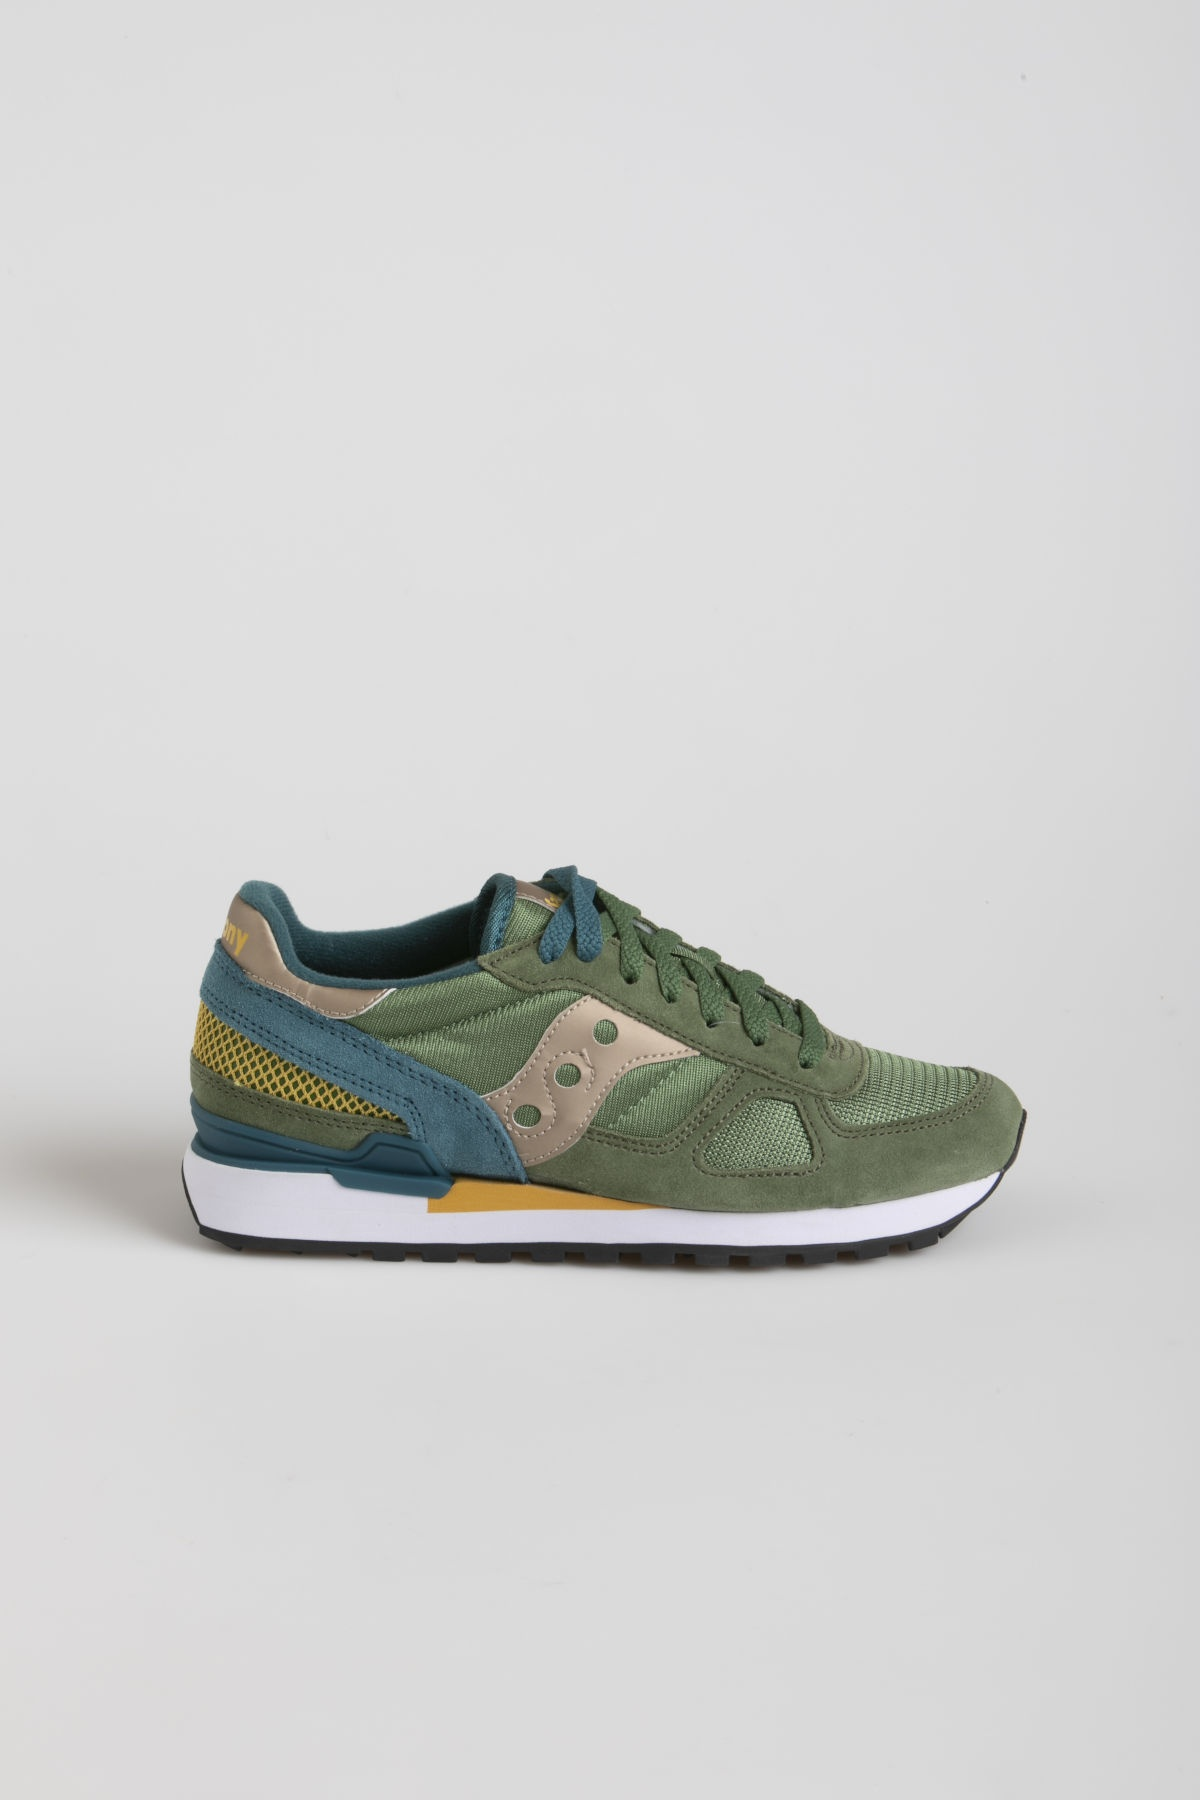 SAUCONY SHADOW O' green / teal / yellow F/W 19-20